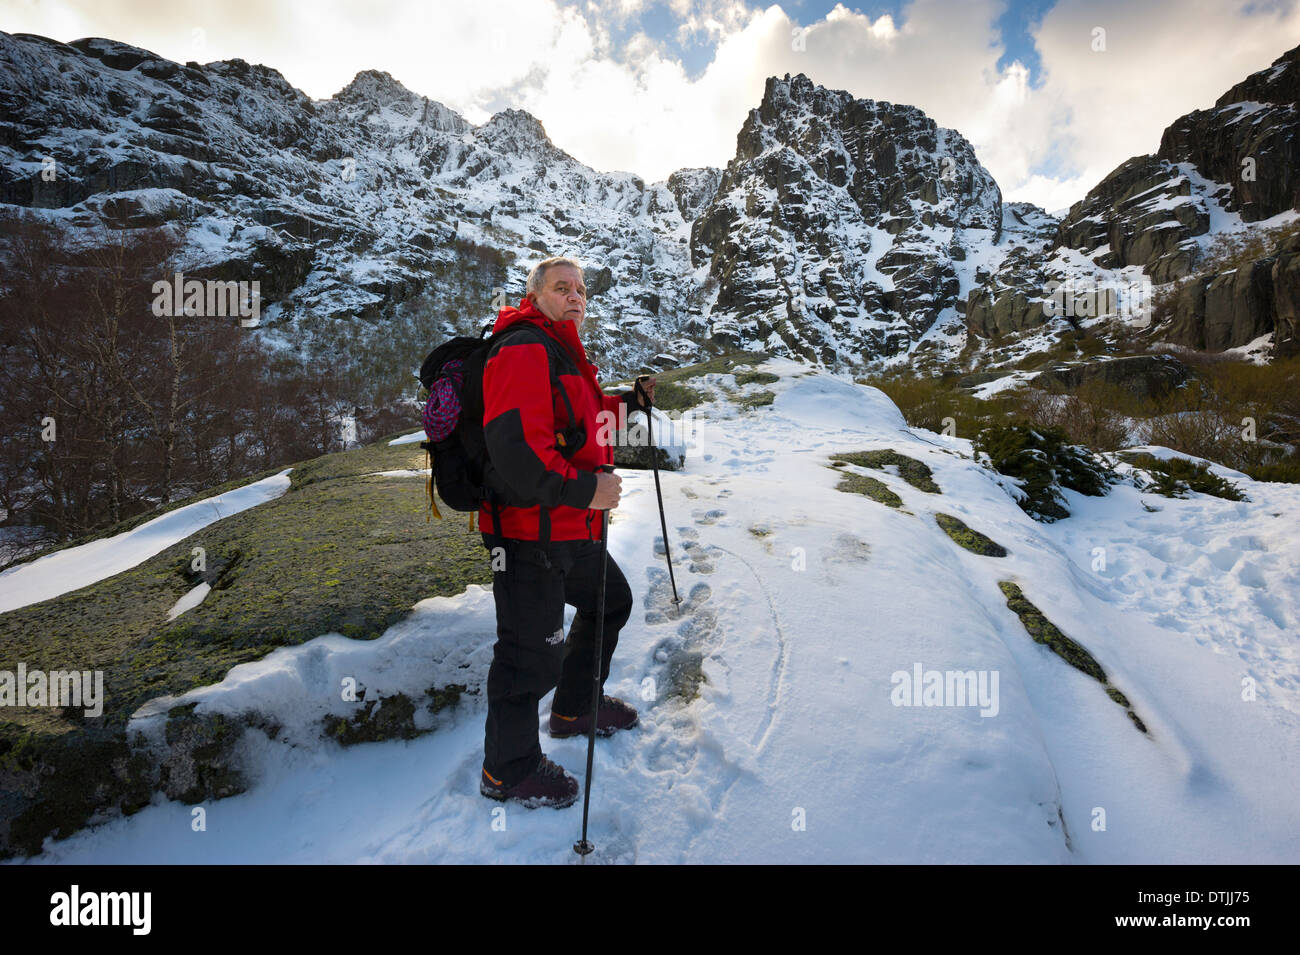 Middle aged man climbing a snow covered mountain in the Winter - Stock Image